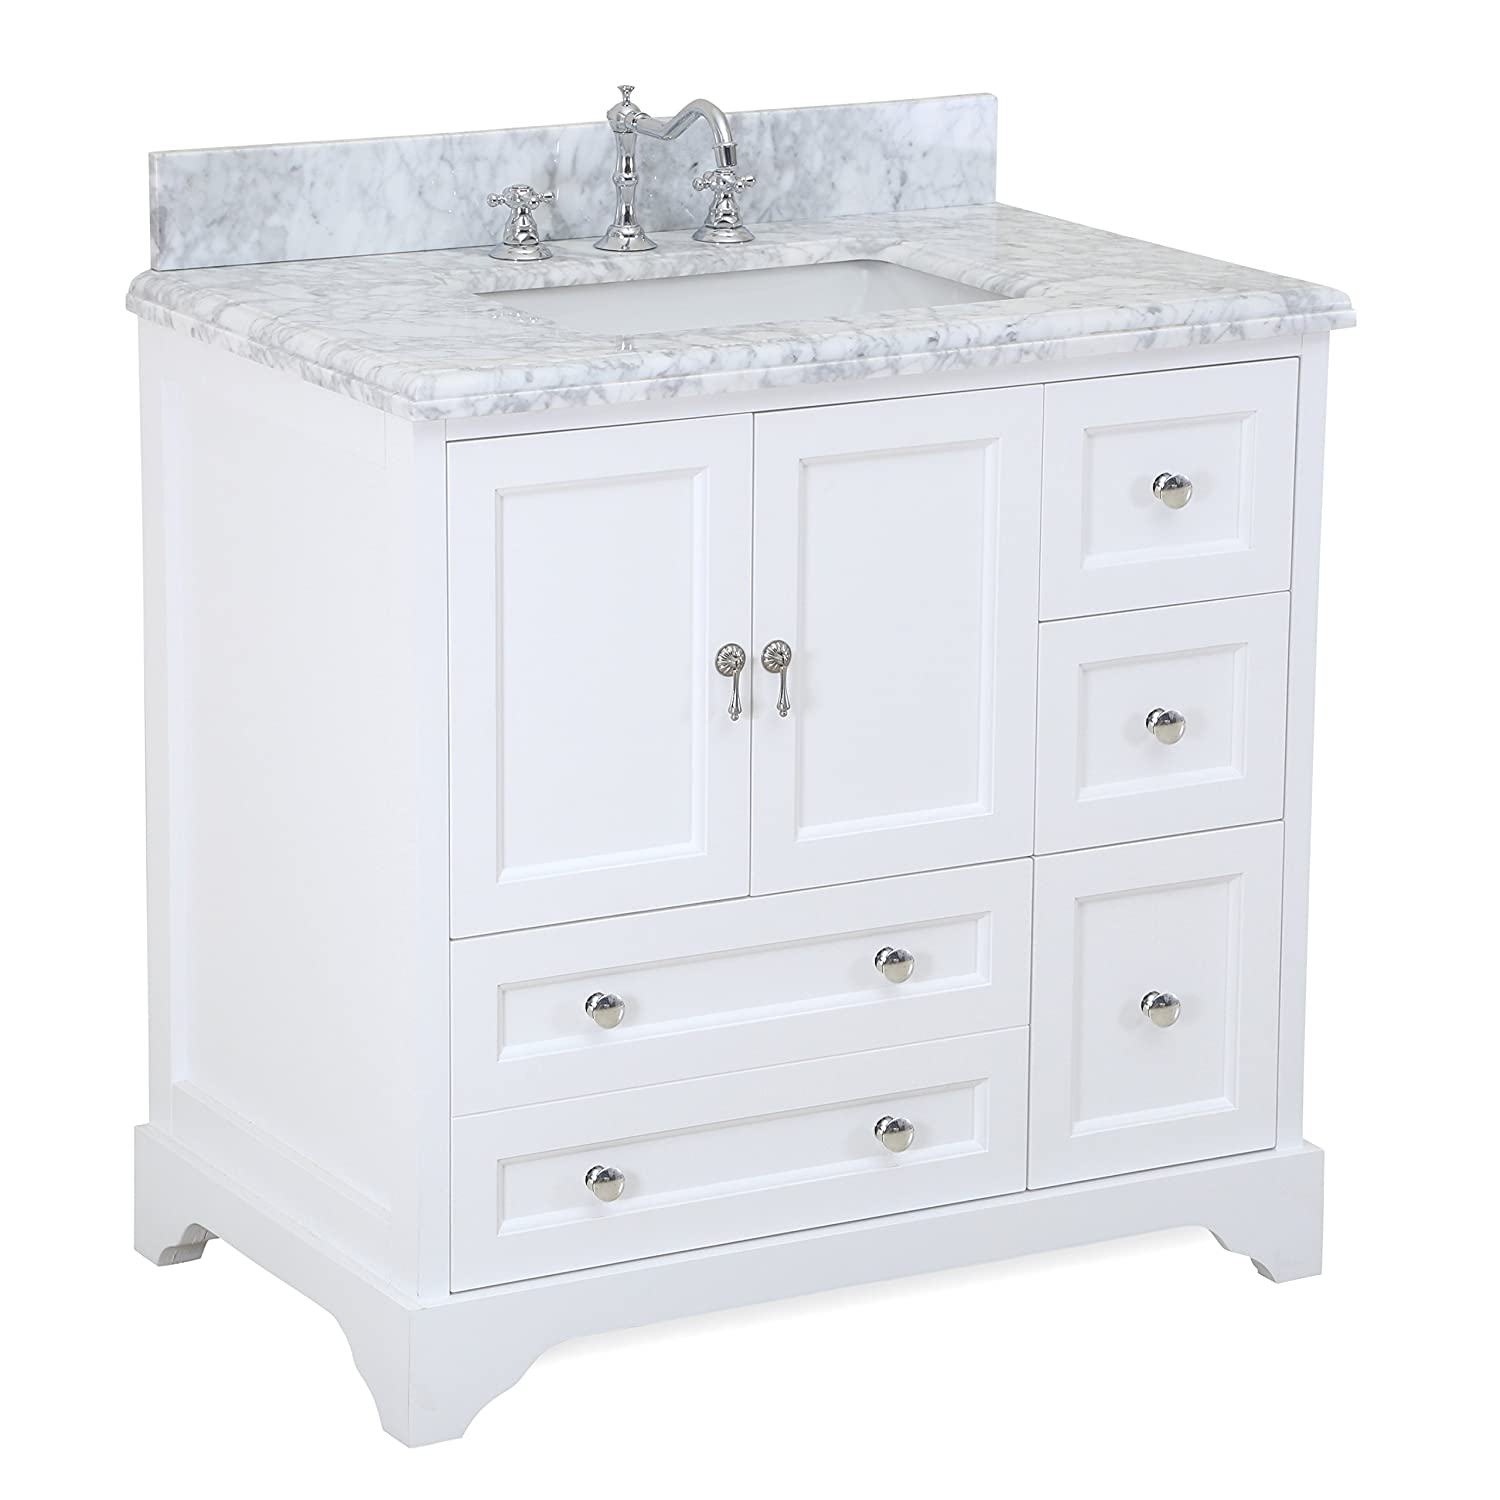 madison 36inch bathroom vanity includes italian carrara marble top white cabinet with soft close drawers u0026 doors and rectangular ceramic